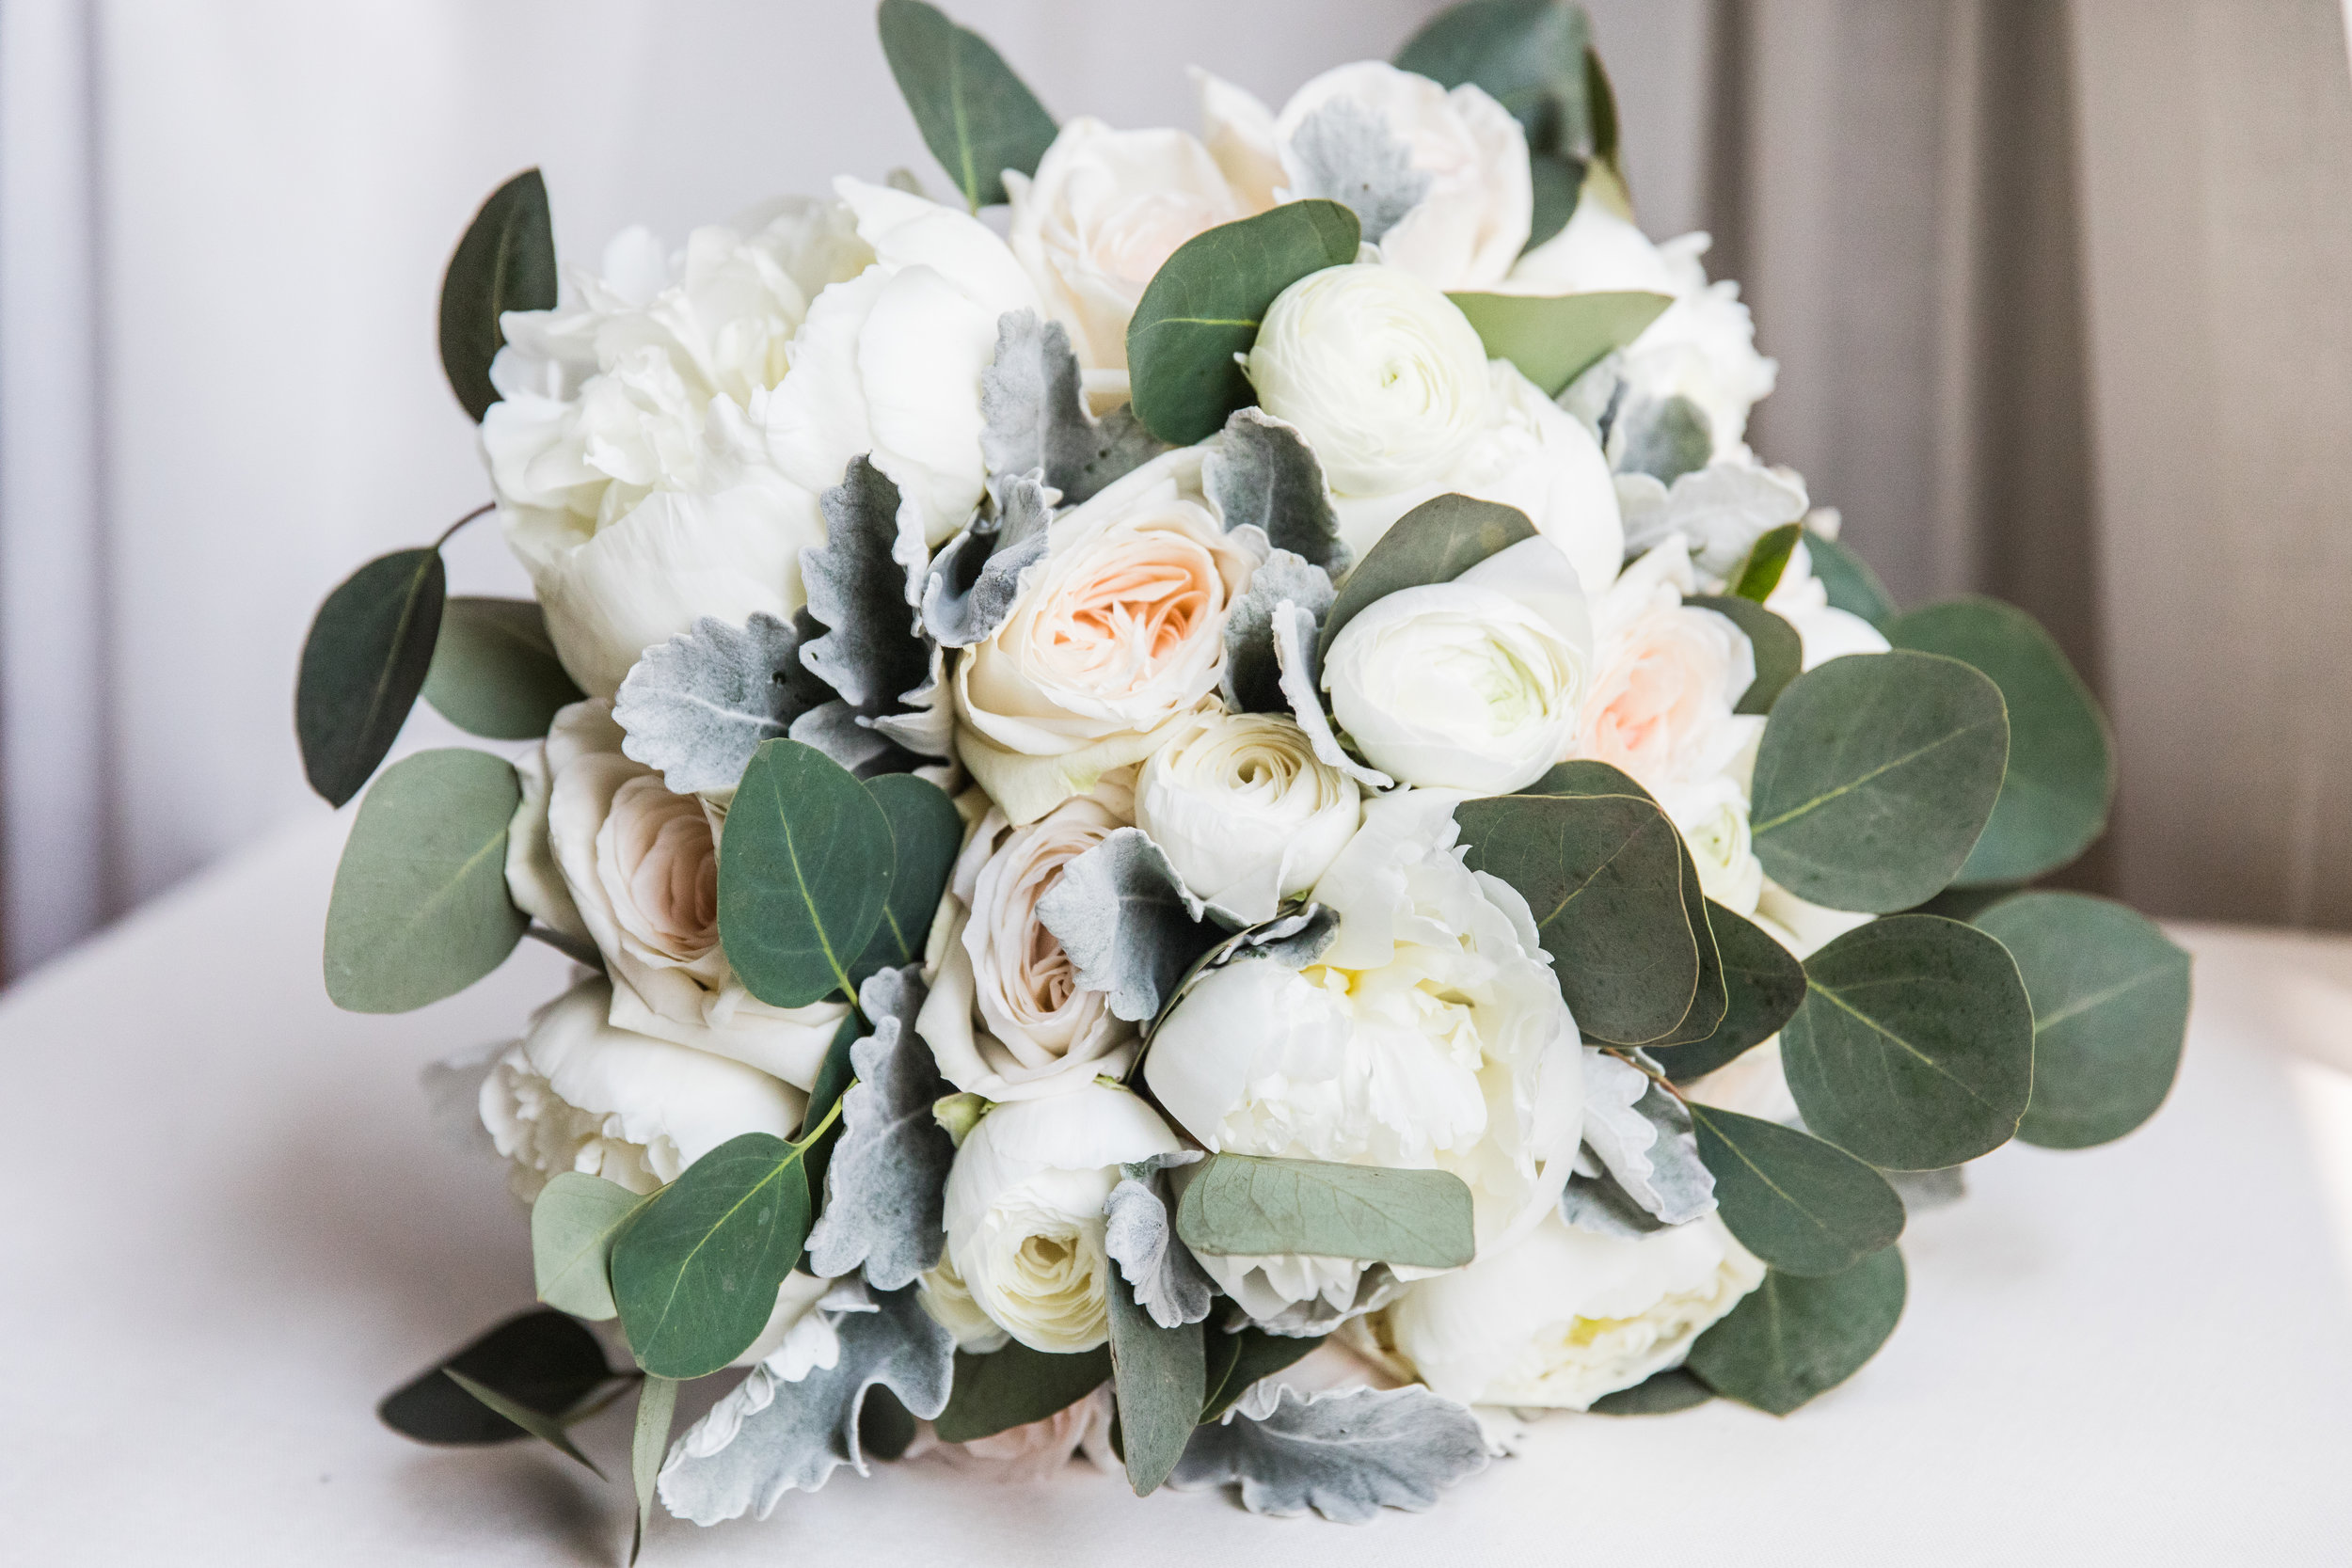 Gorgeous bridal bouquet of peonies, ranunculus, roses, eucalyptus and dusty miller